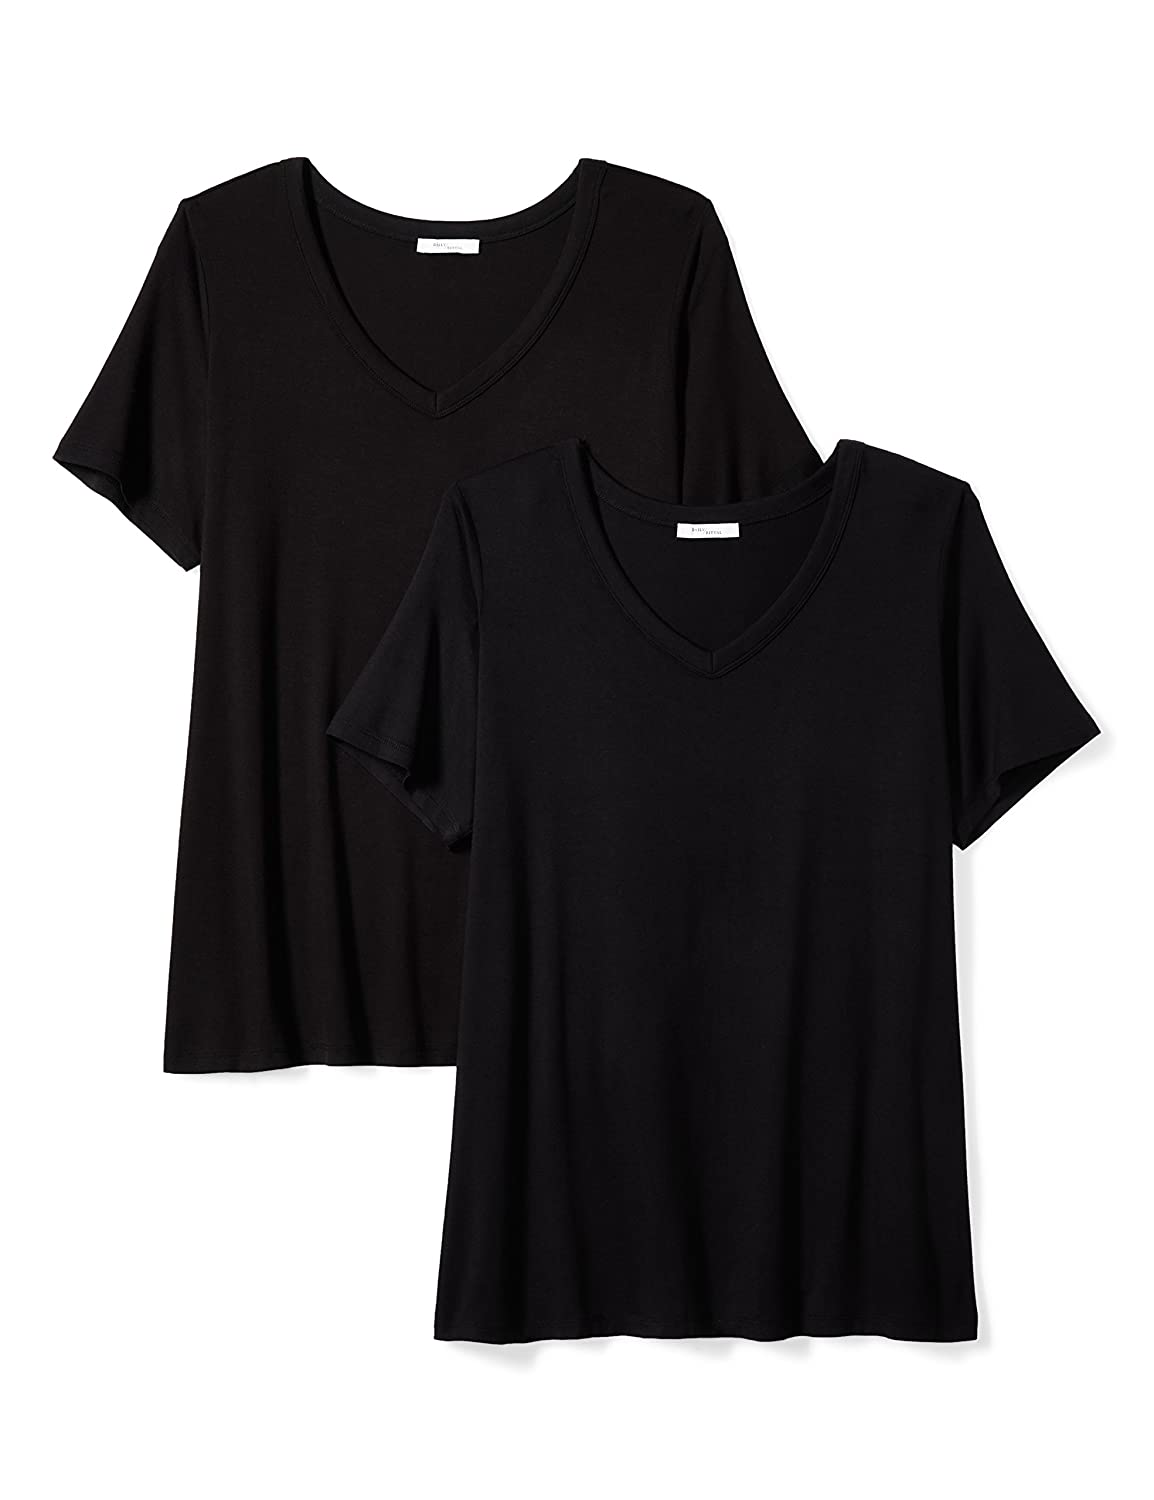 Daily Ritual Womens Plus Size Jersey Short-Sleeve V-Neck T-Shirt, 2-Pack Black/Black 1X PIRD-17031323-W